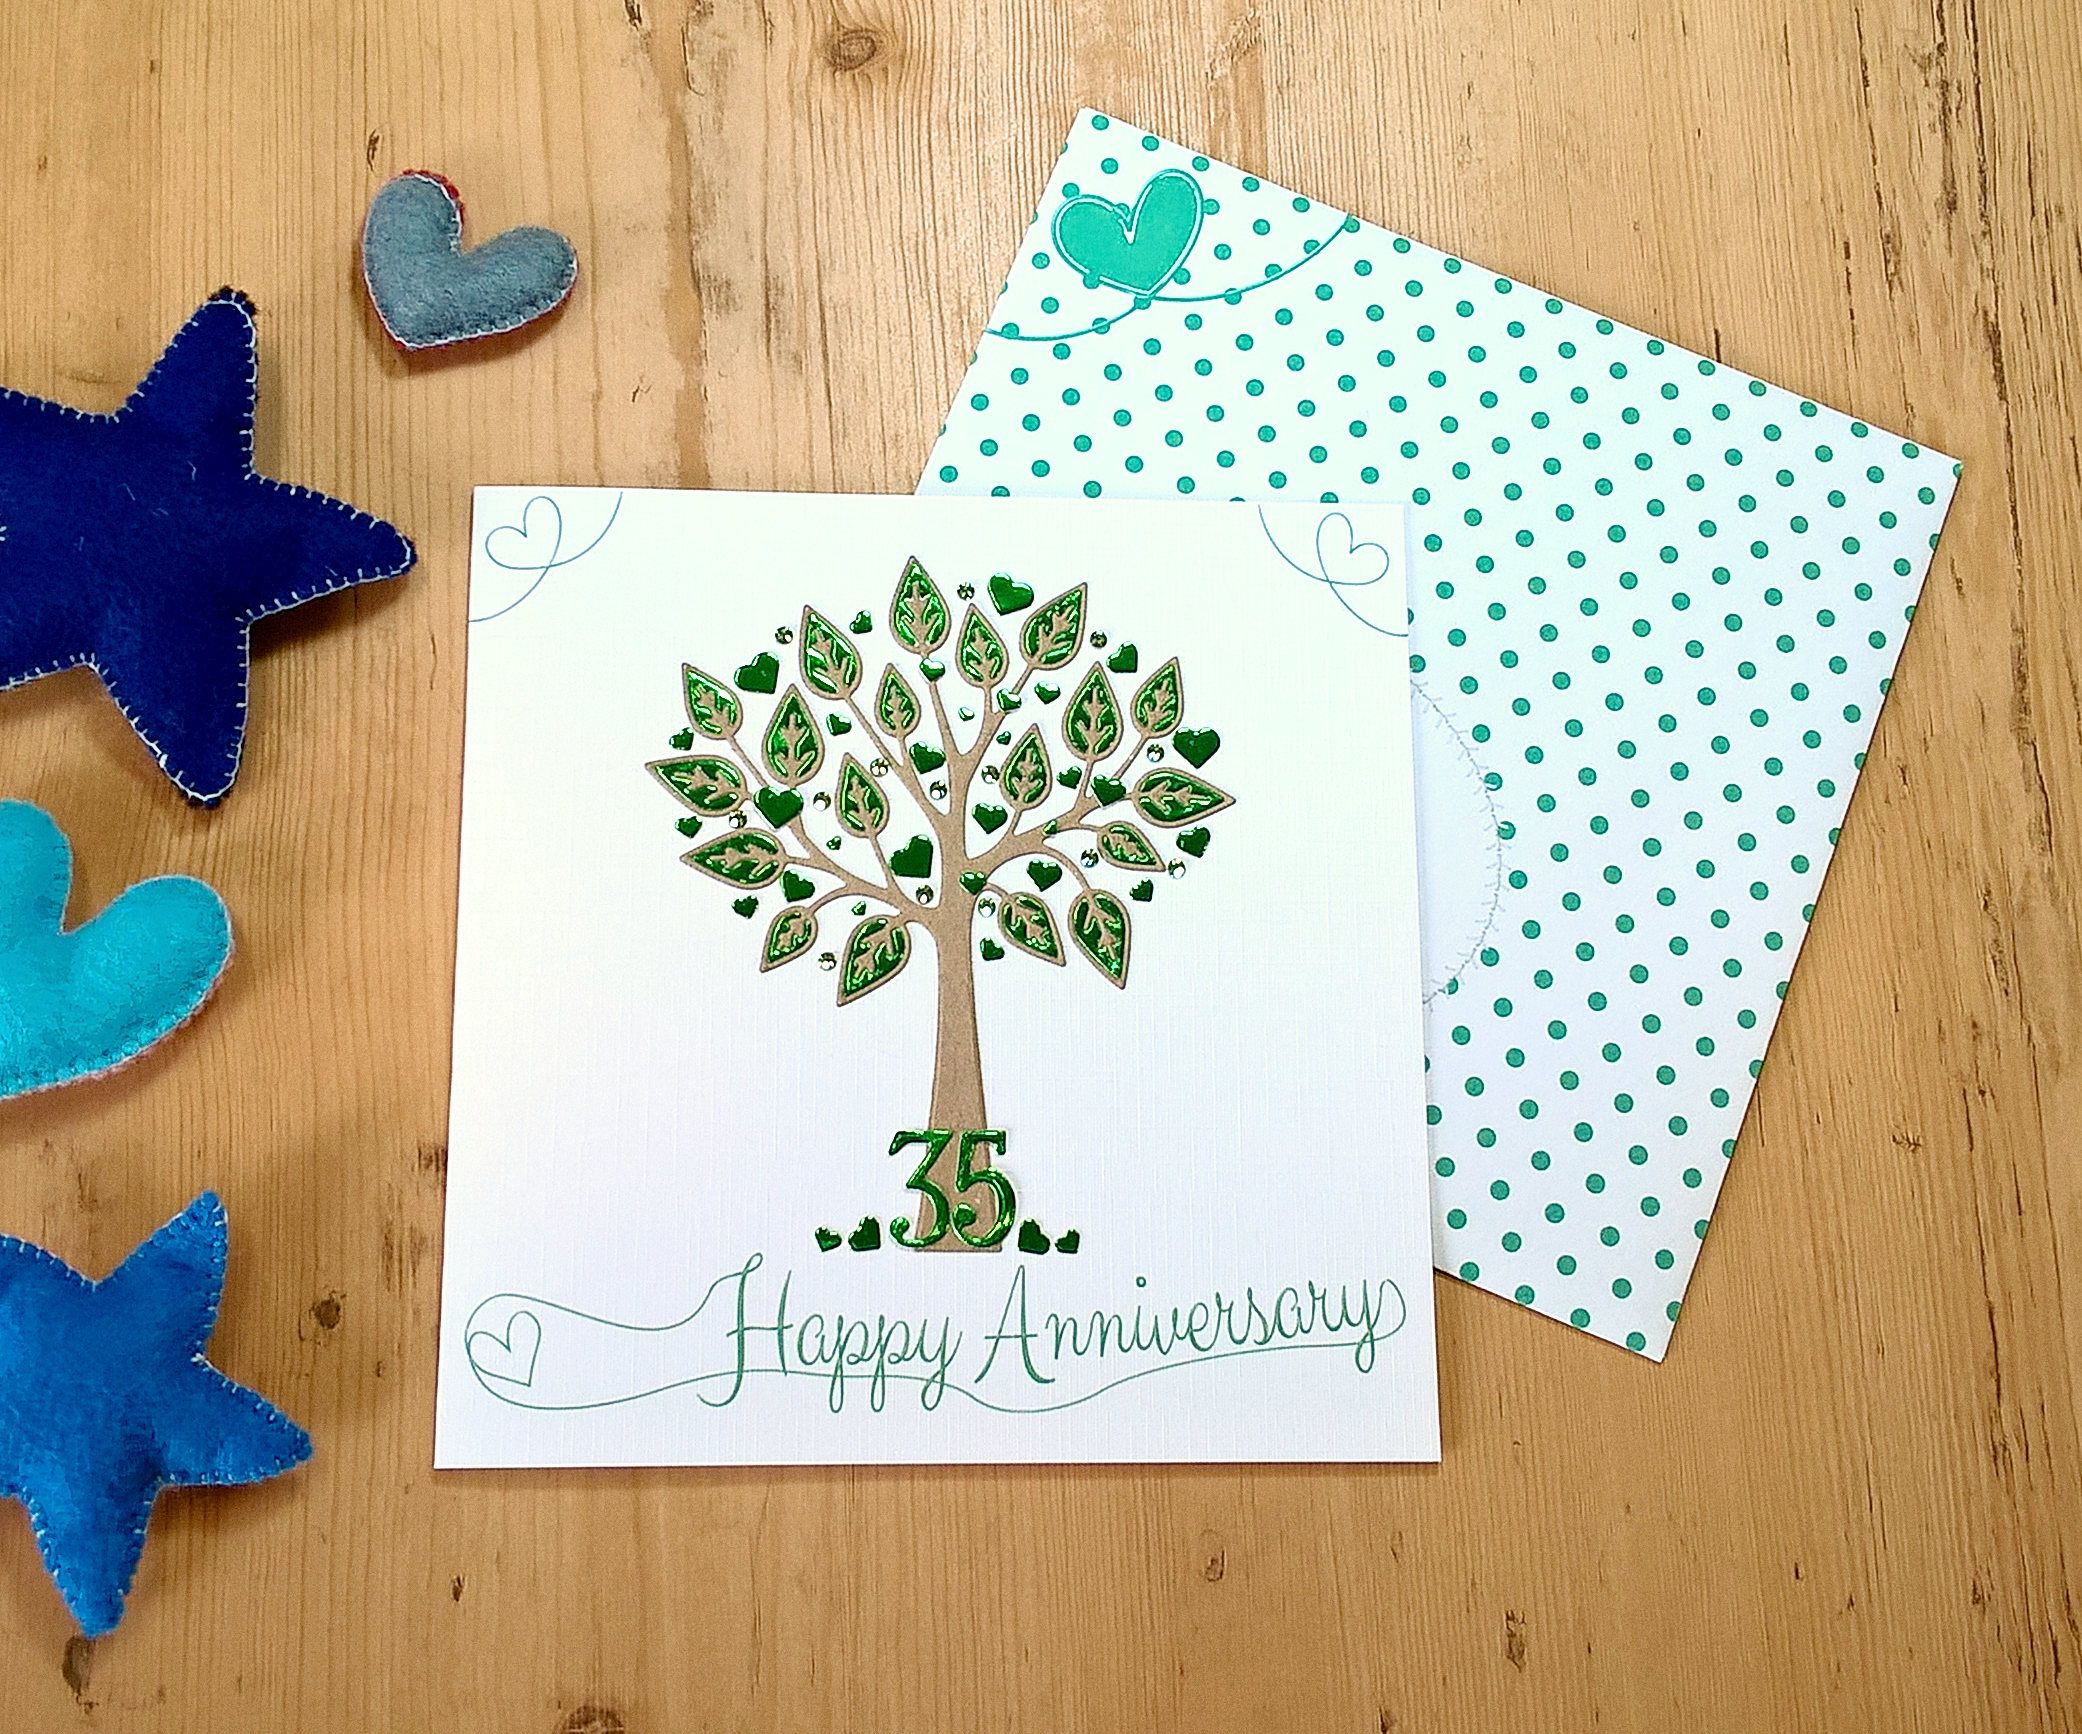 Emerald wedding anniversary card. 6 inch square. tree theme